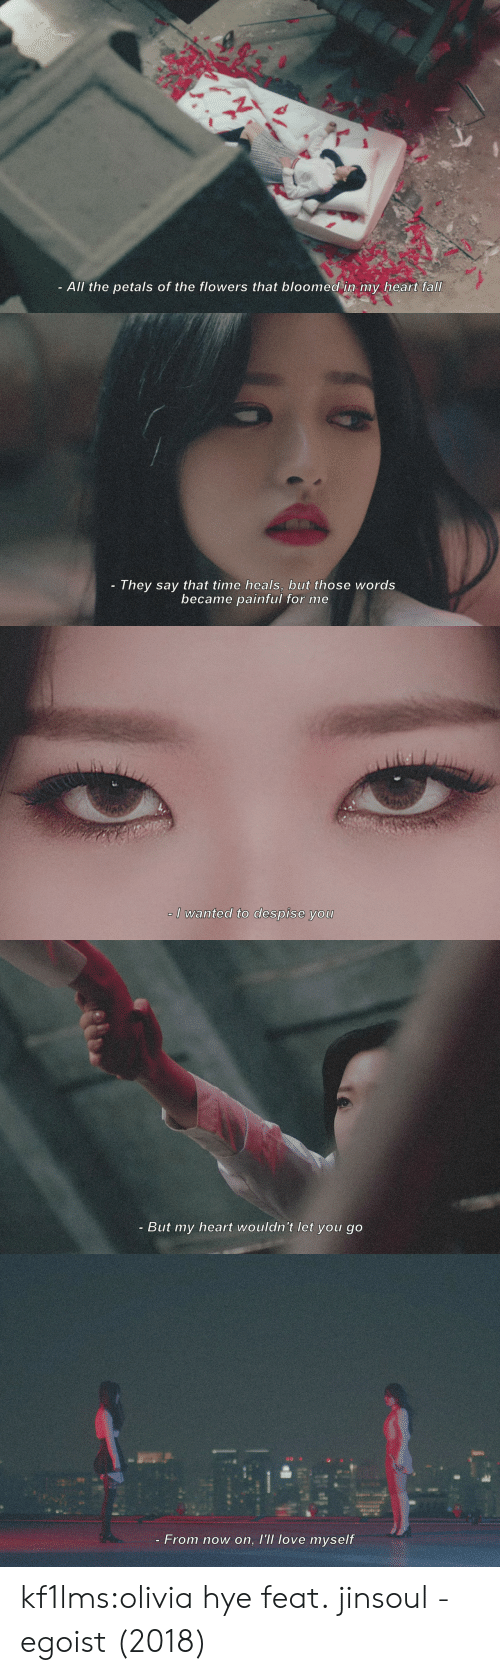 Despise: All the petals of the flowers that bloomed in my heart fall   They say that time heals, buut those words  became painful for me   I wanted to despise you   - But my heart wouldn't let you go   - From now on, l'll love myself kf1lms:olivia hye feat. jinsoul - egoist (2018)